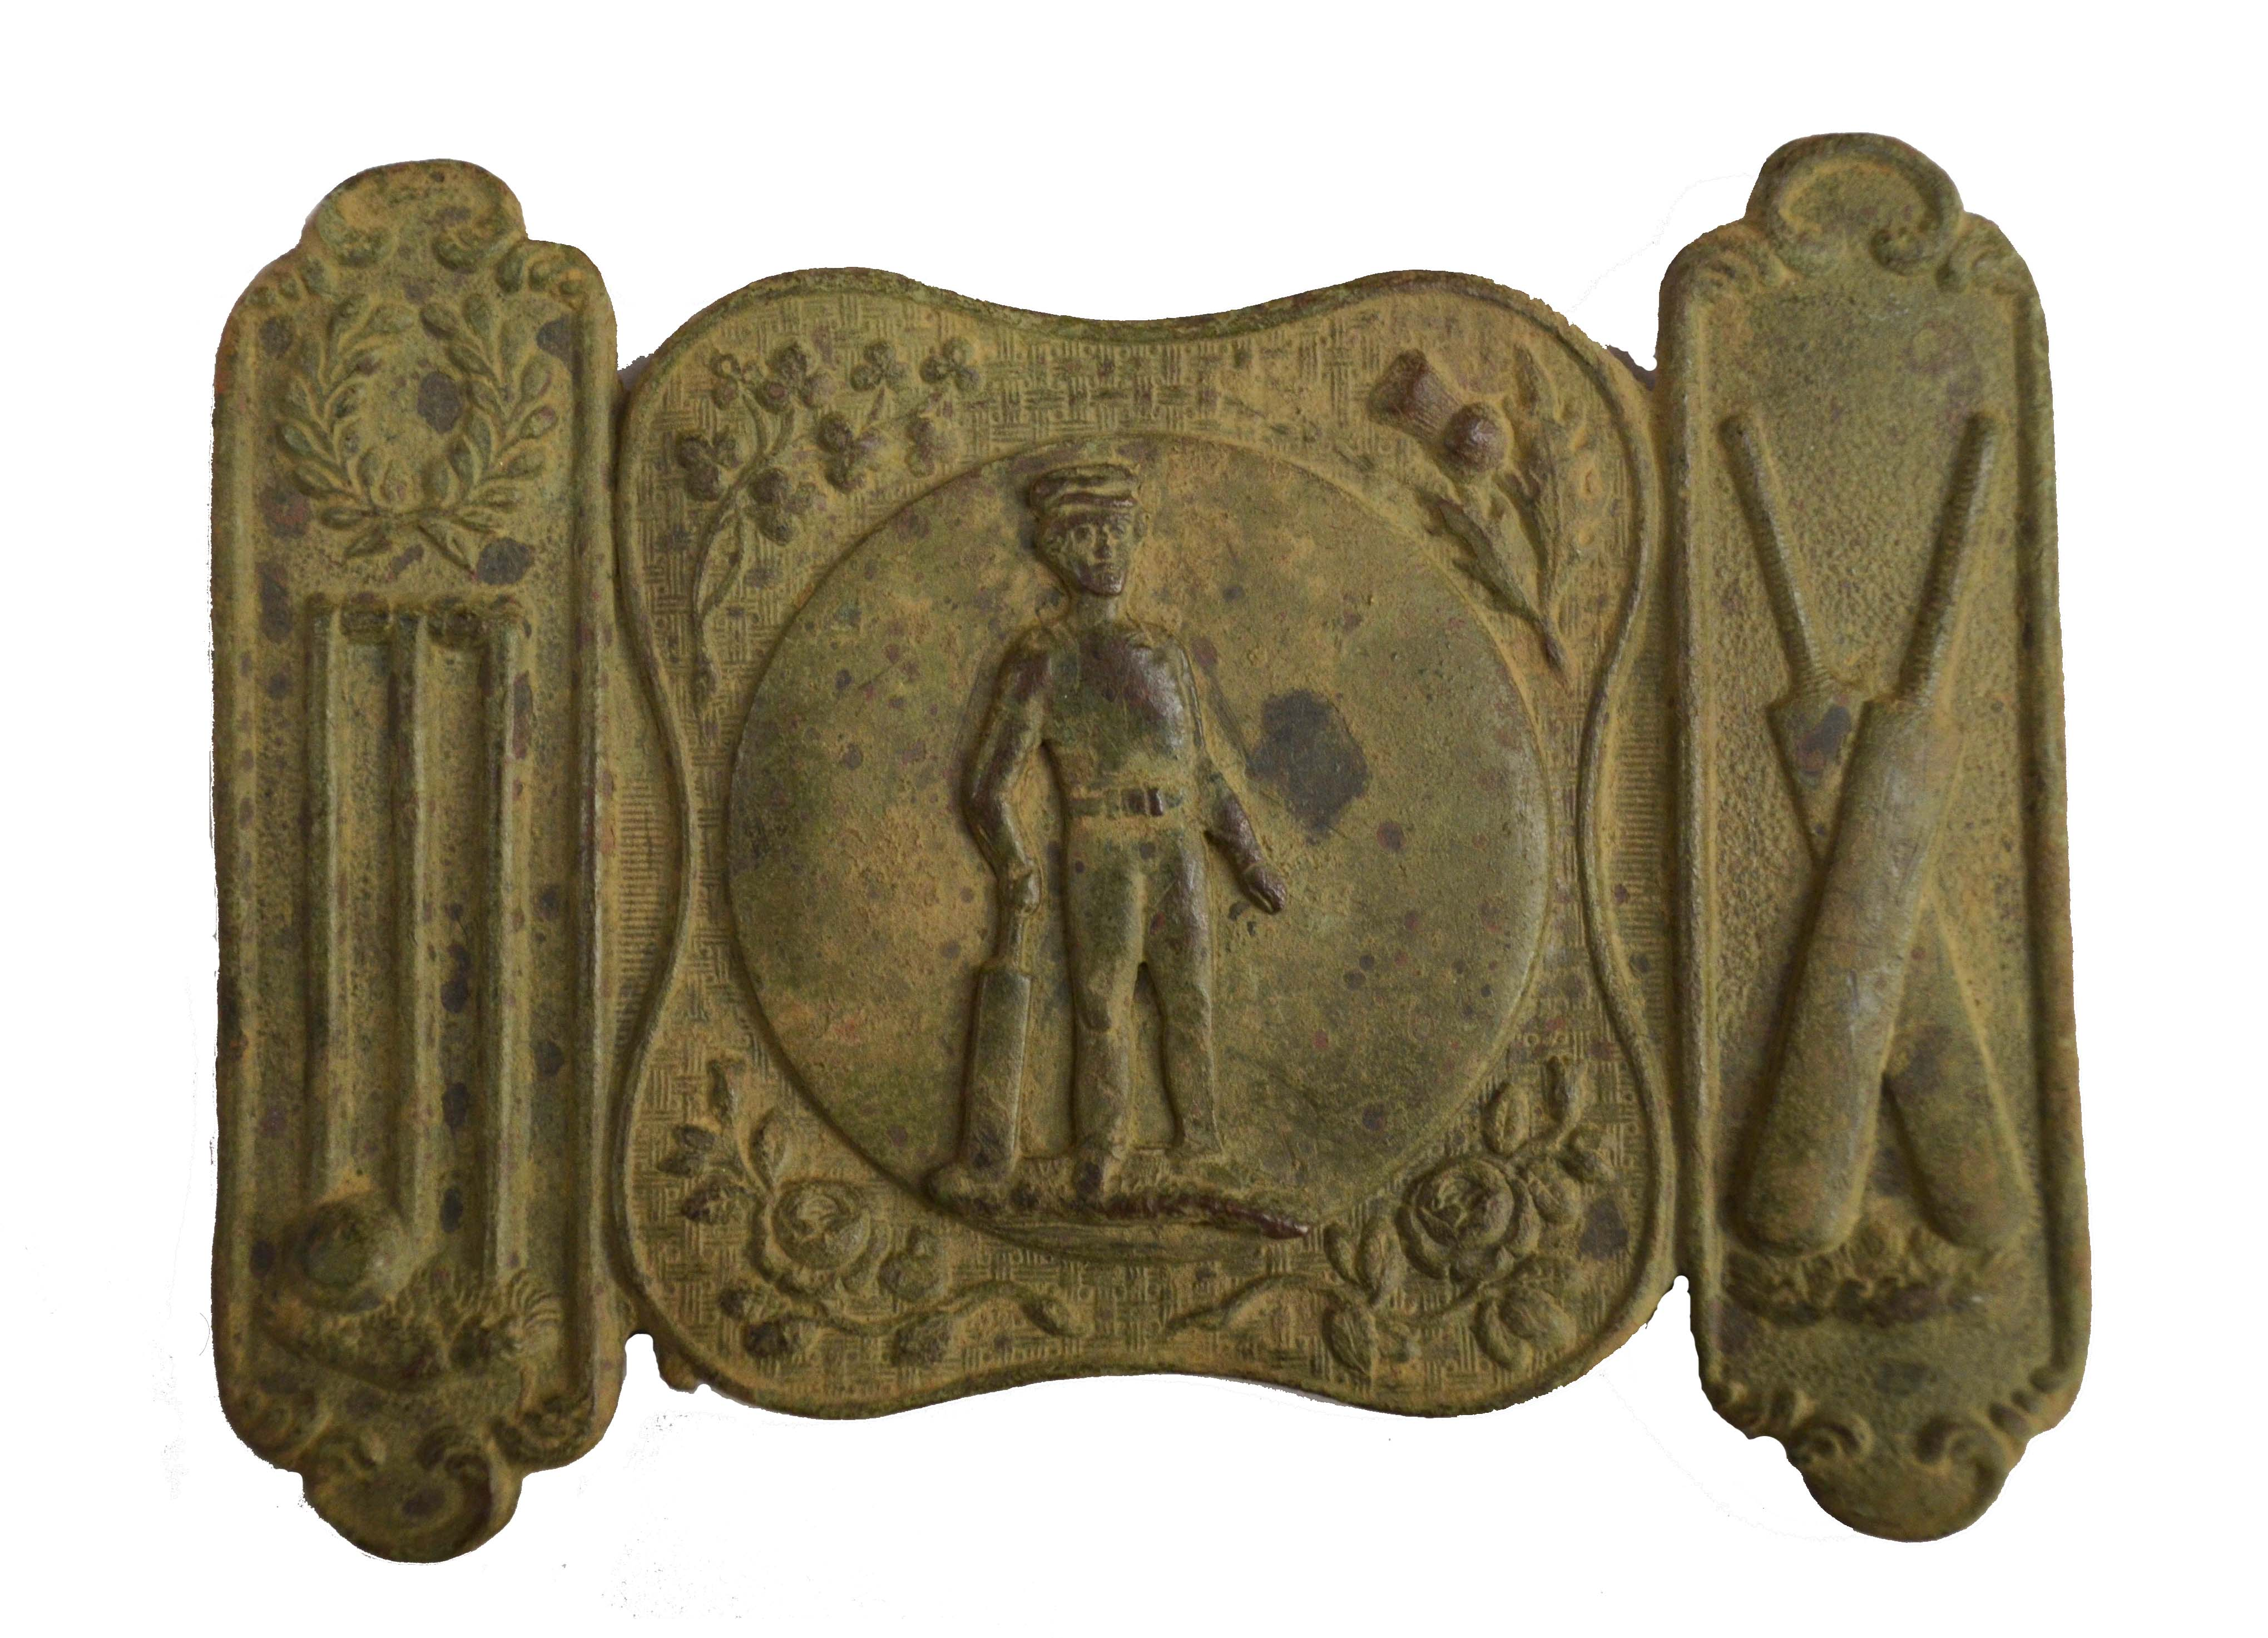 Intact Cricket Belt Buckle found with Minelab E-TRAC